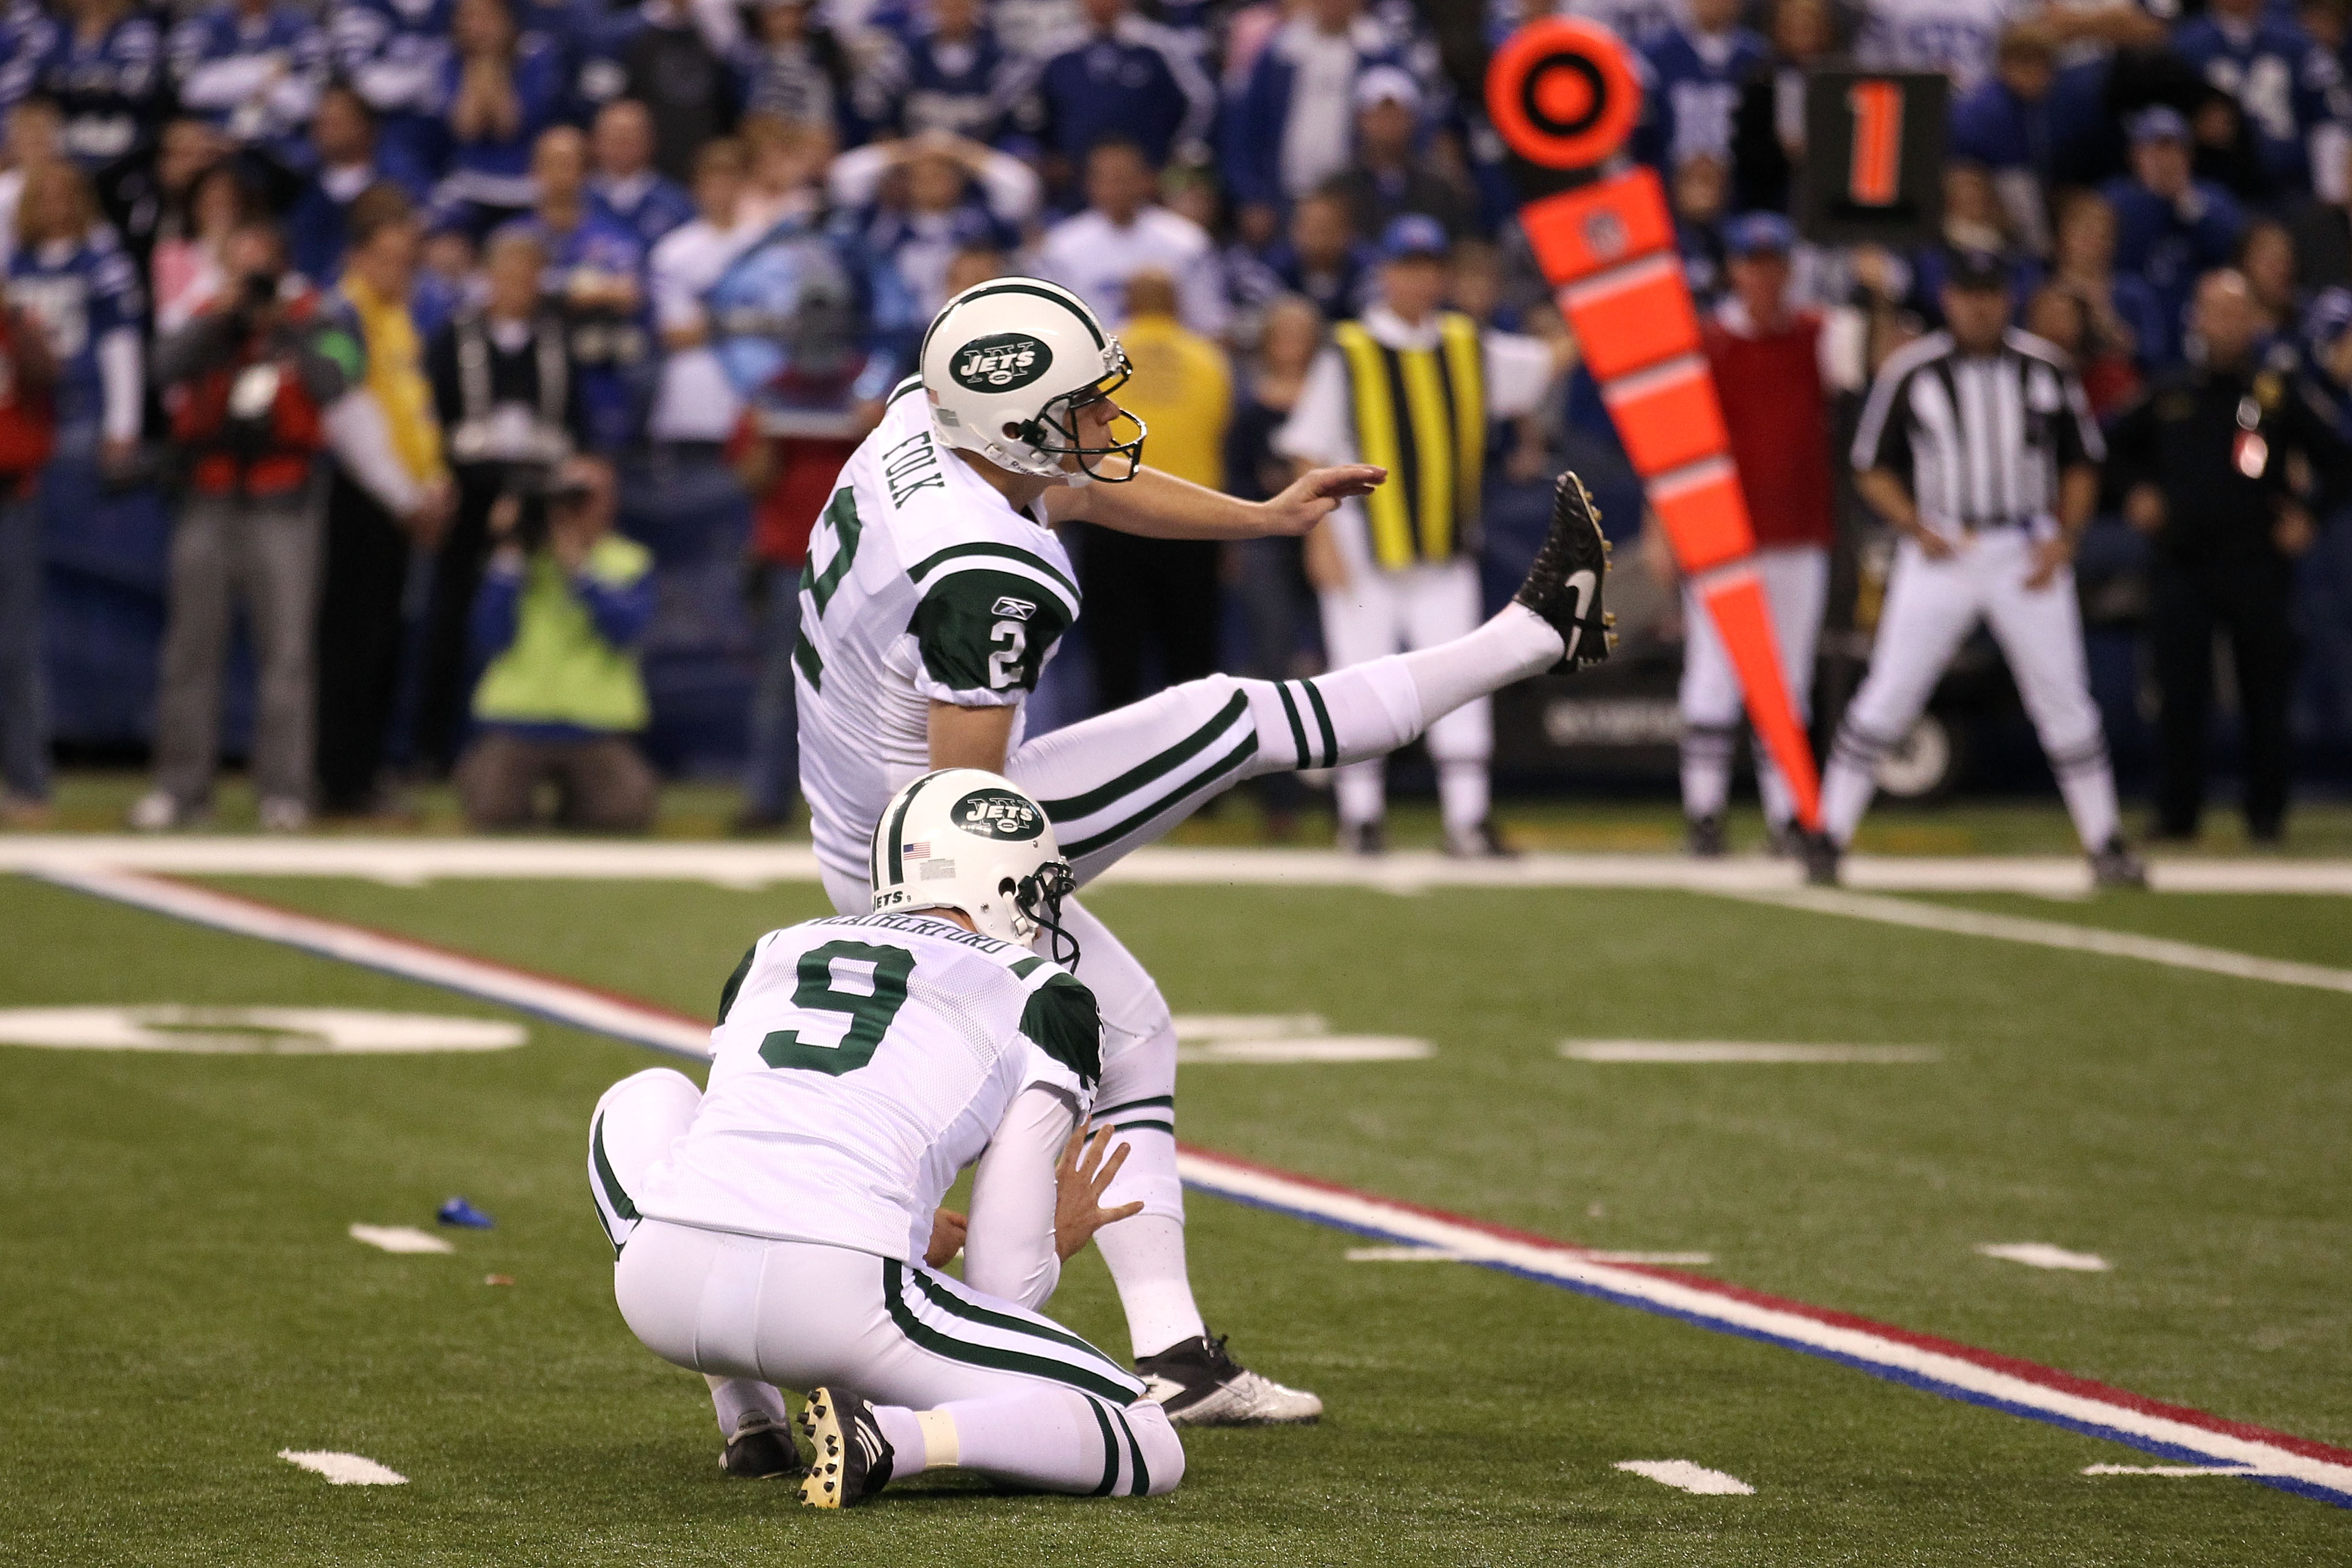 INDIANAPOLIS, IN - JANUARY 08:  Place kicker Nick Folk #2 of the New York Jets successfully kicks a game-winning a 32-yard field goal in the fourth quarter to win 17-16 against the Indianapolis Colts during their 2011 AFC wild card playoff game at Lucas O